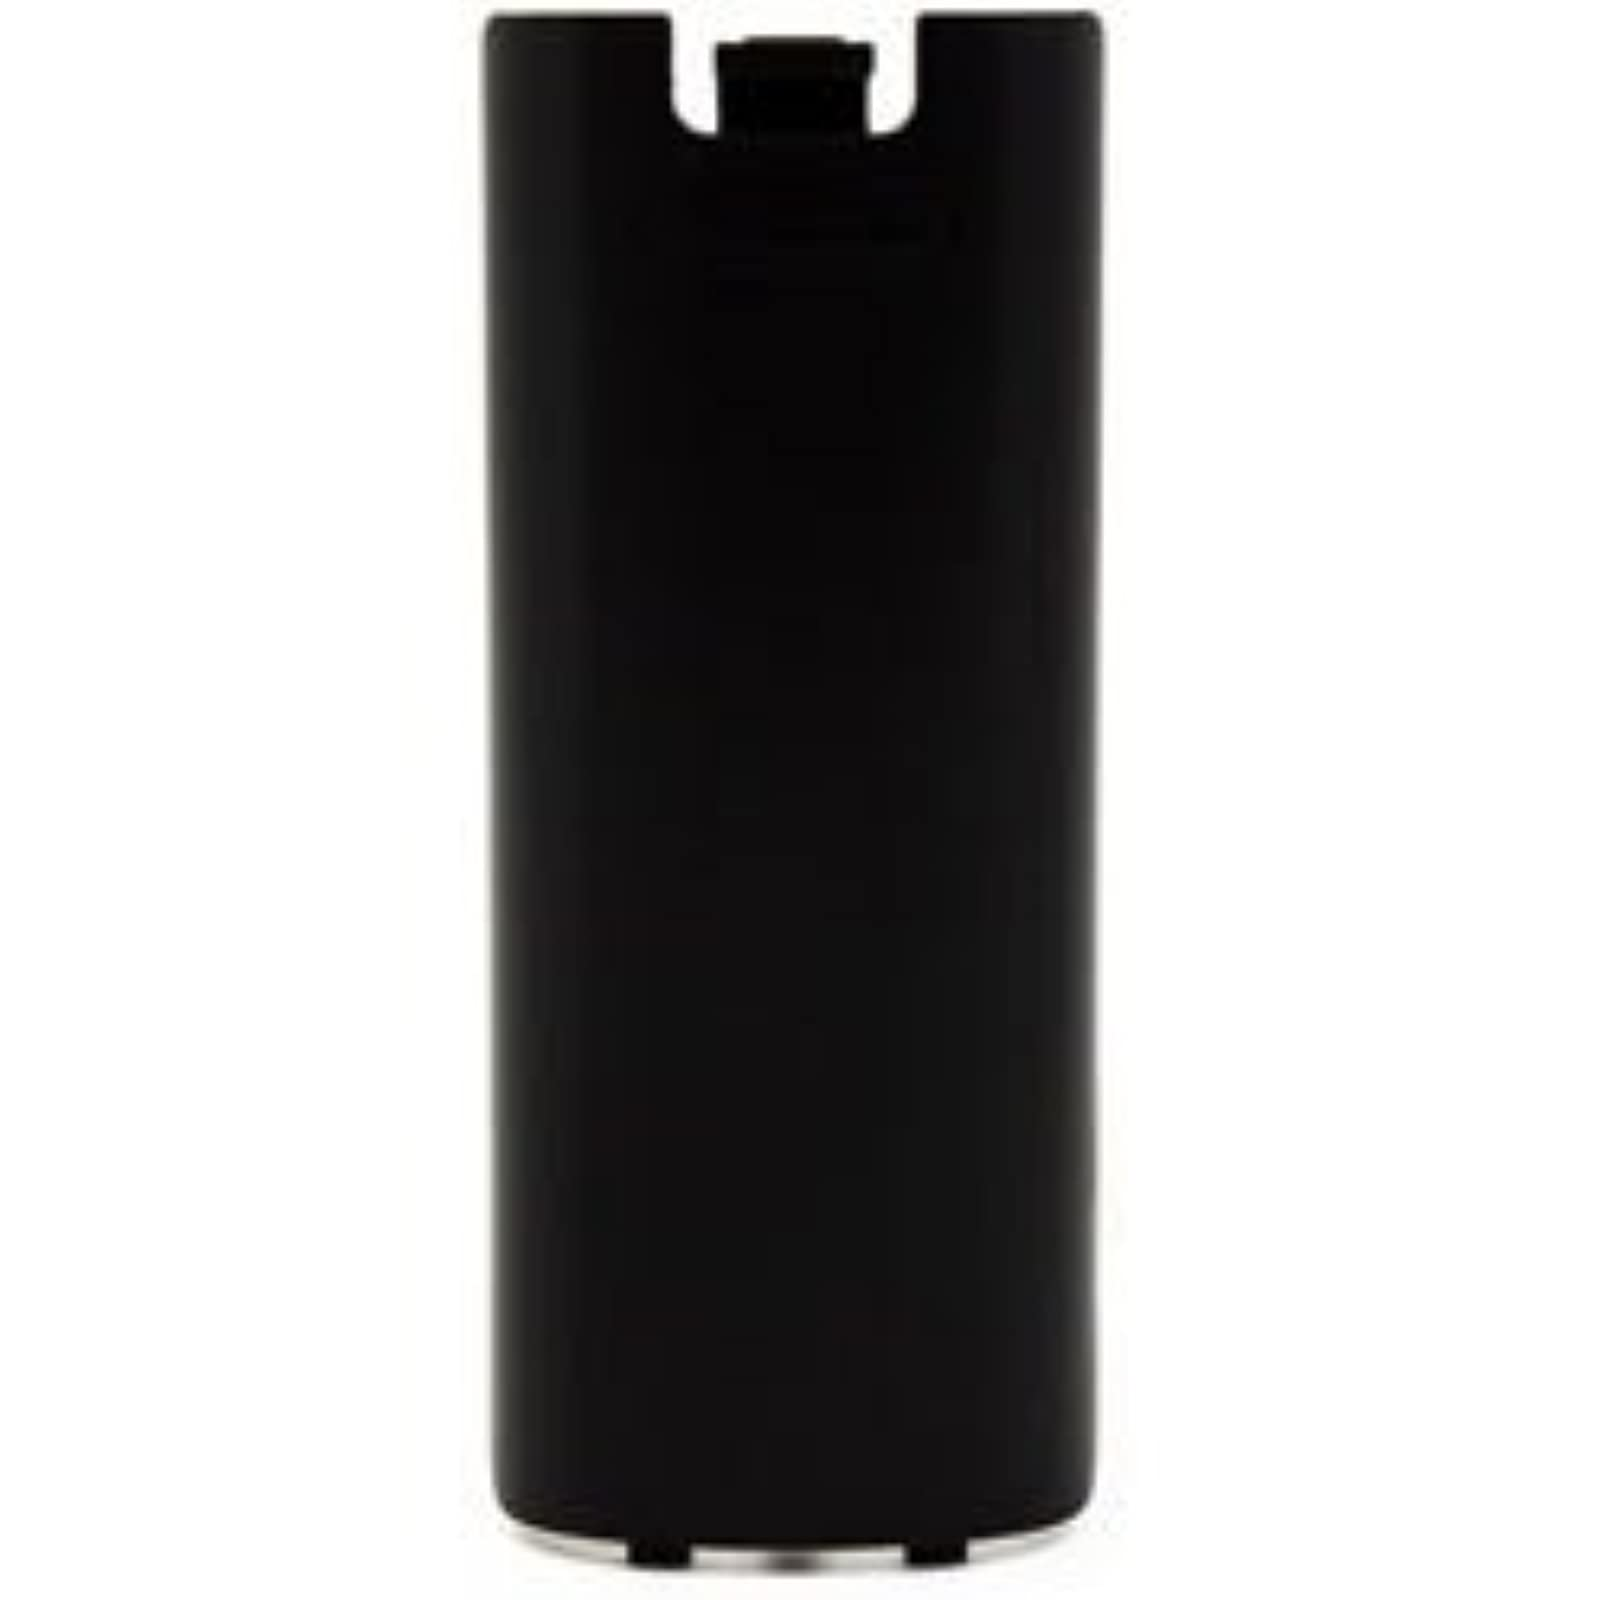 Third Party Remote Control Battery Door Cover Black For Wii